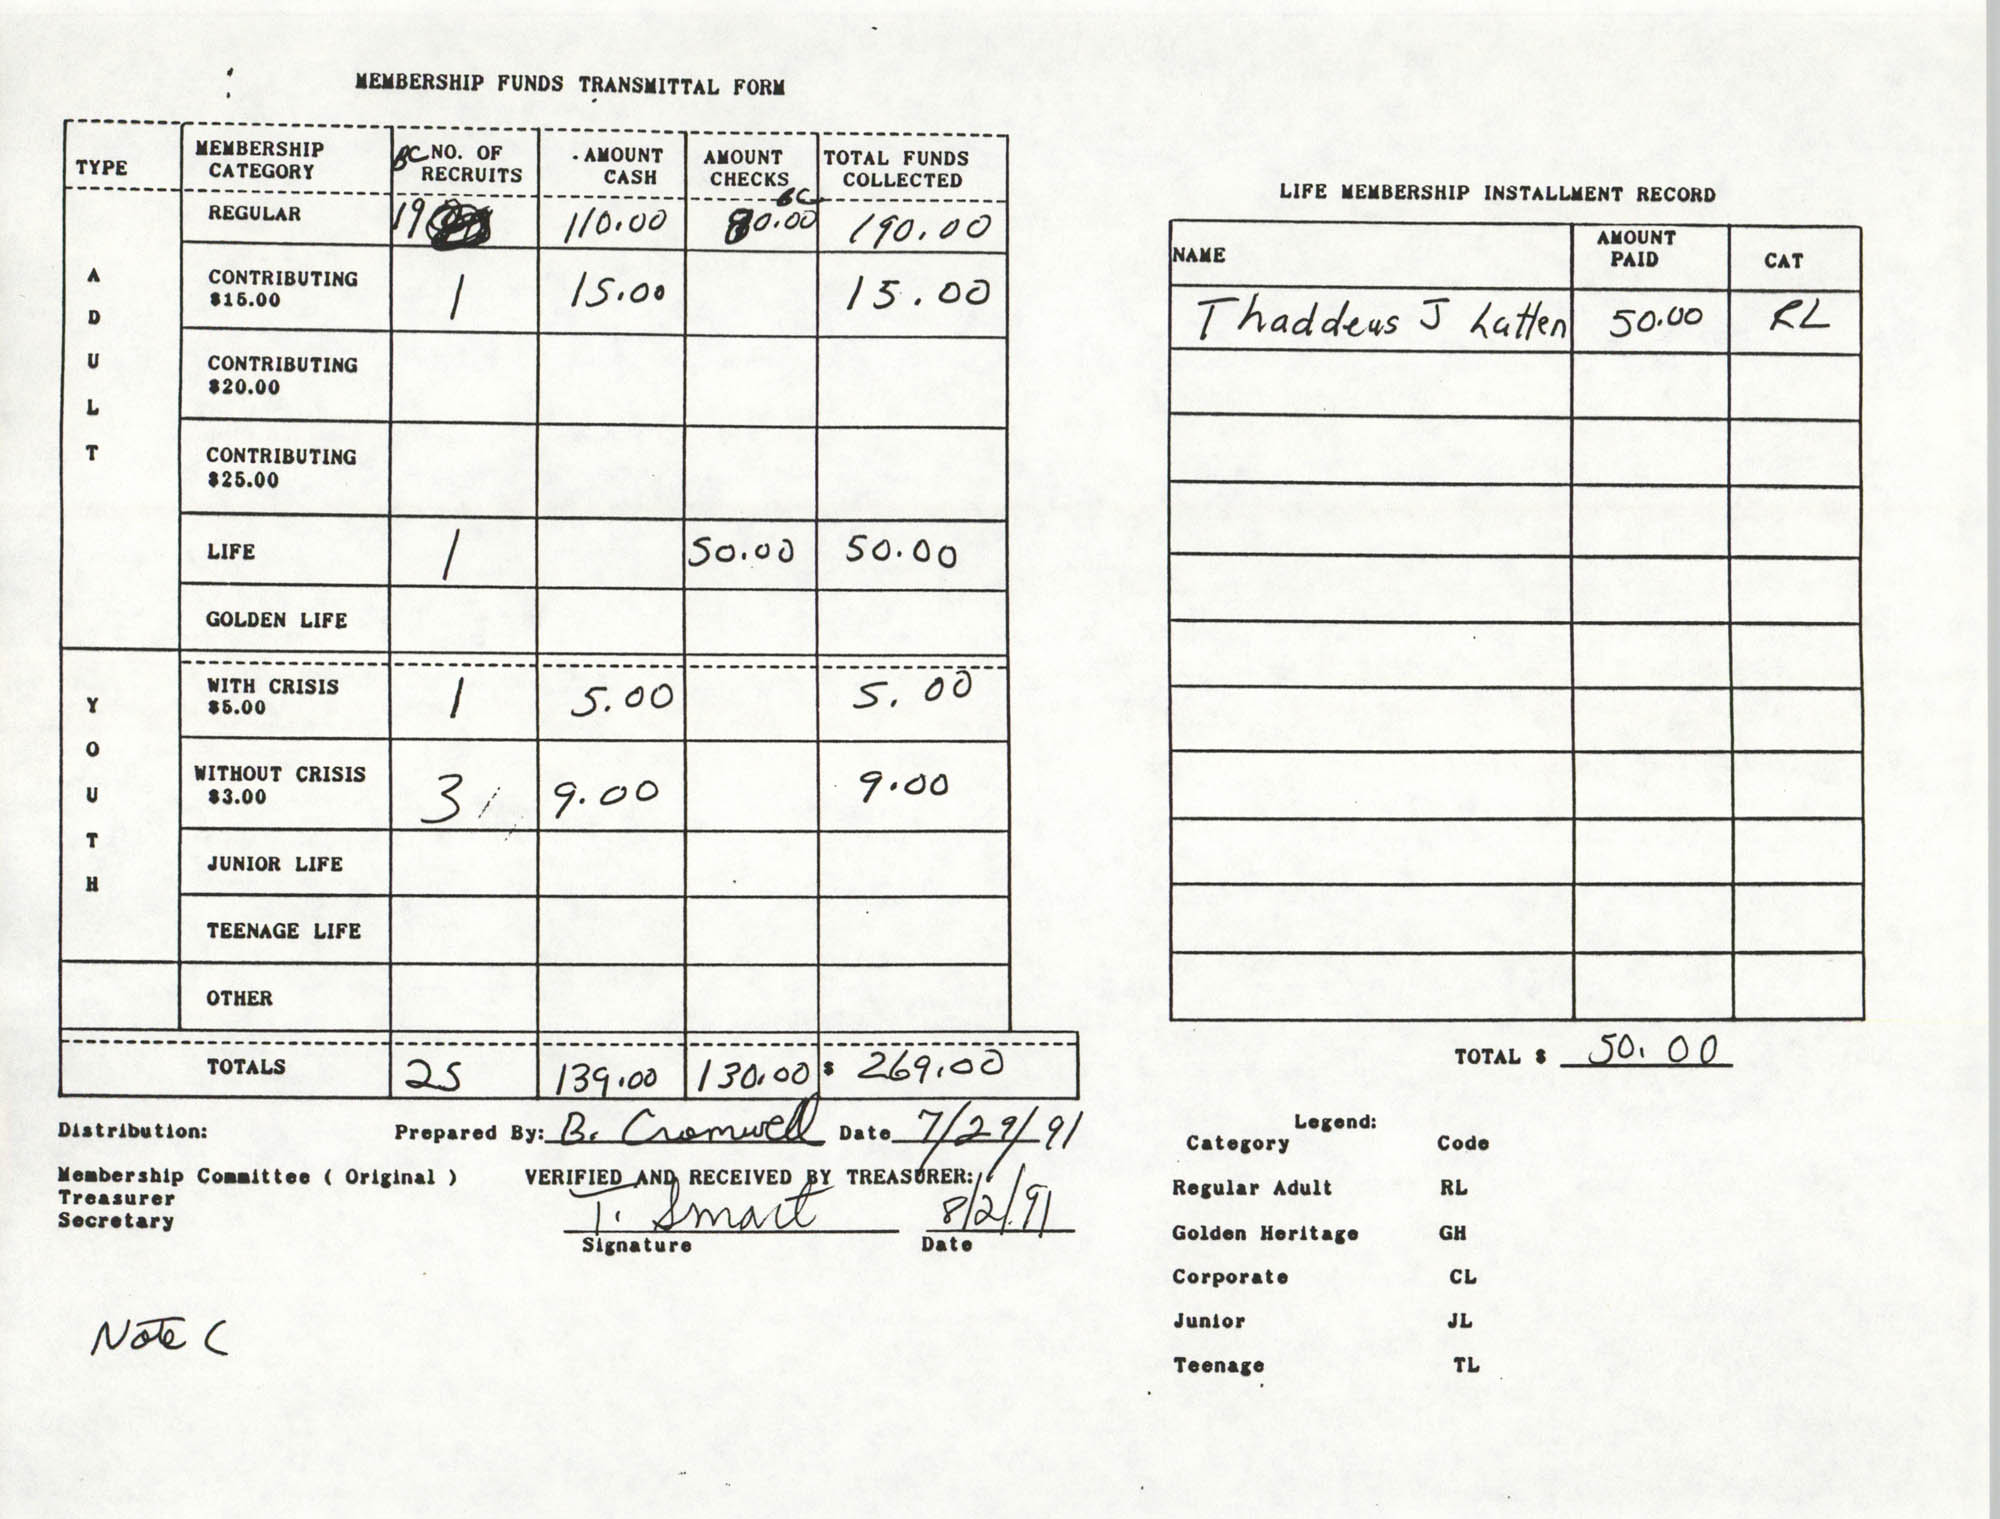 Charleston Branch of the NAACP Funds Transmittal Forms, July 1991, Page 10